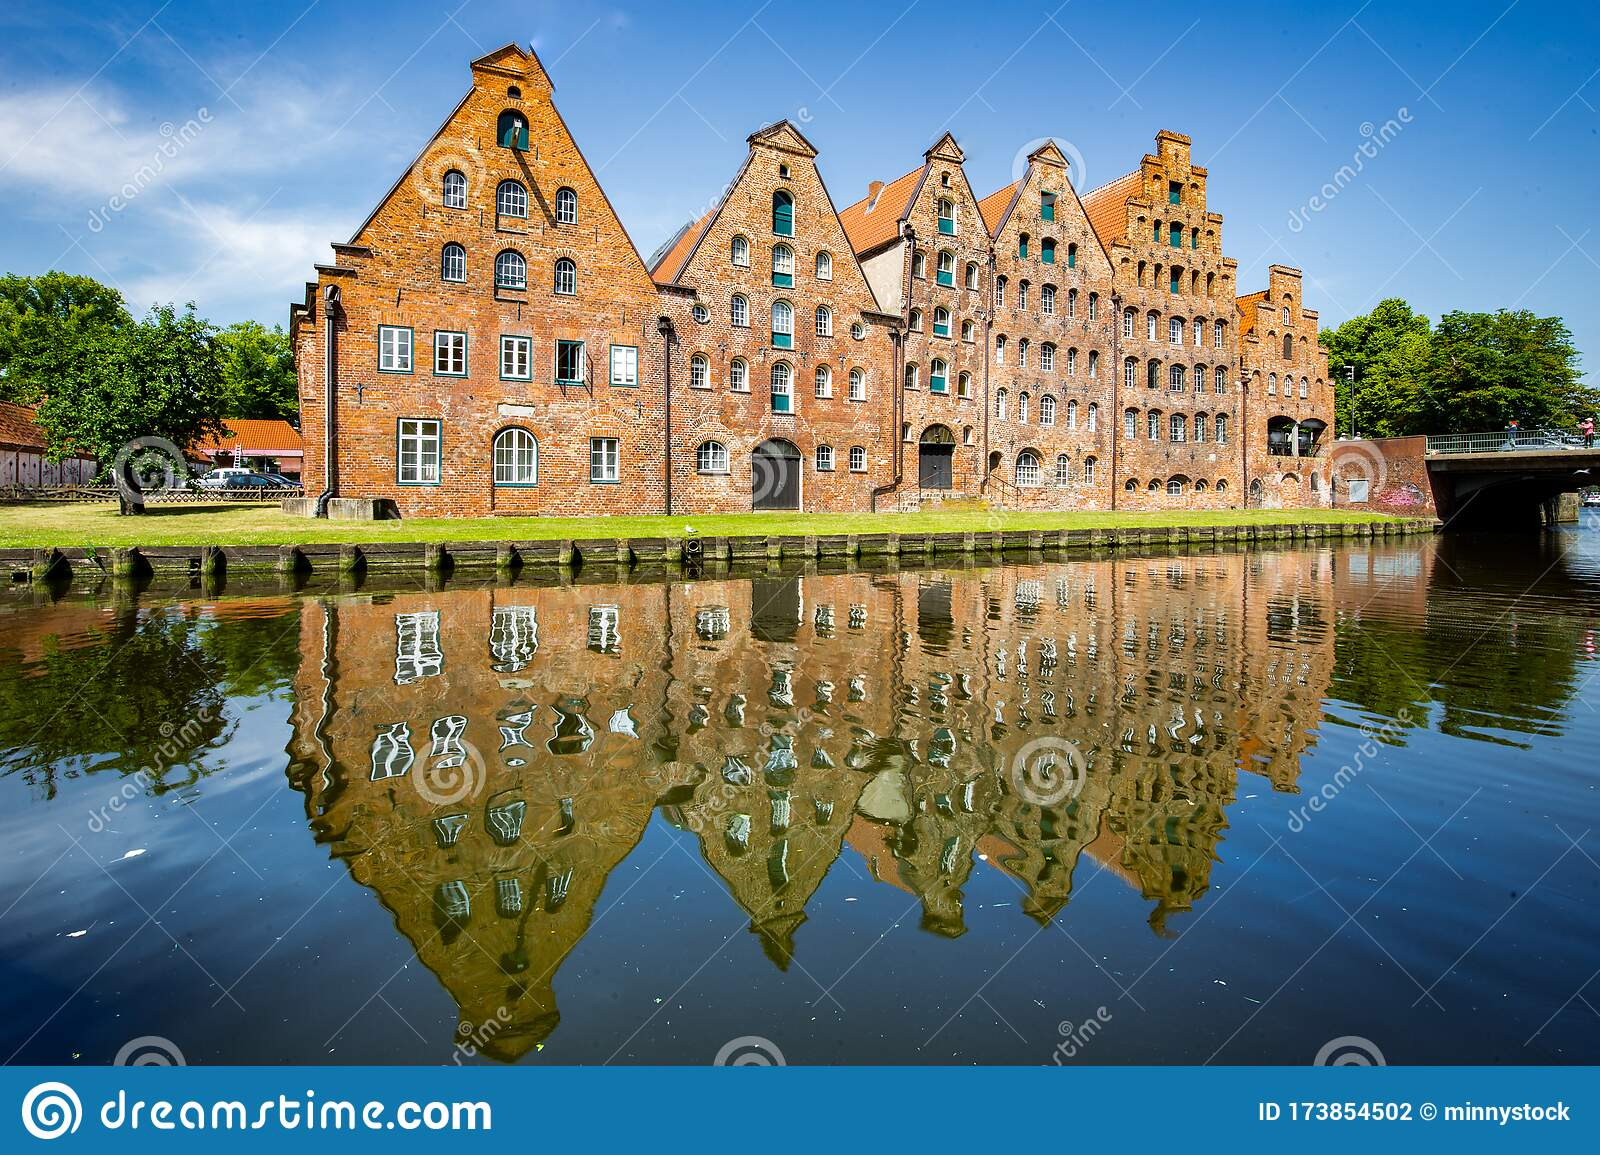 Famous Salzspeicher Brick Houses In Luebeck Schleswig Holstein Germany Stock Photo Image Of Lubeck Nordsee 173854502